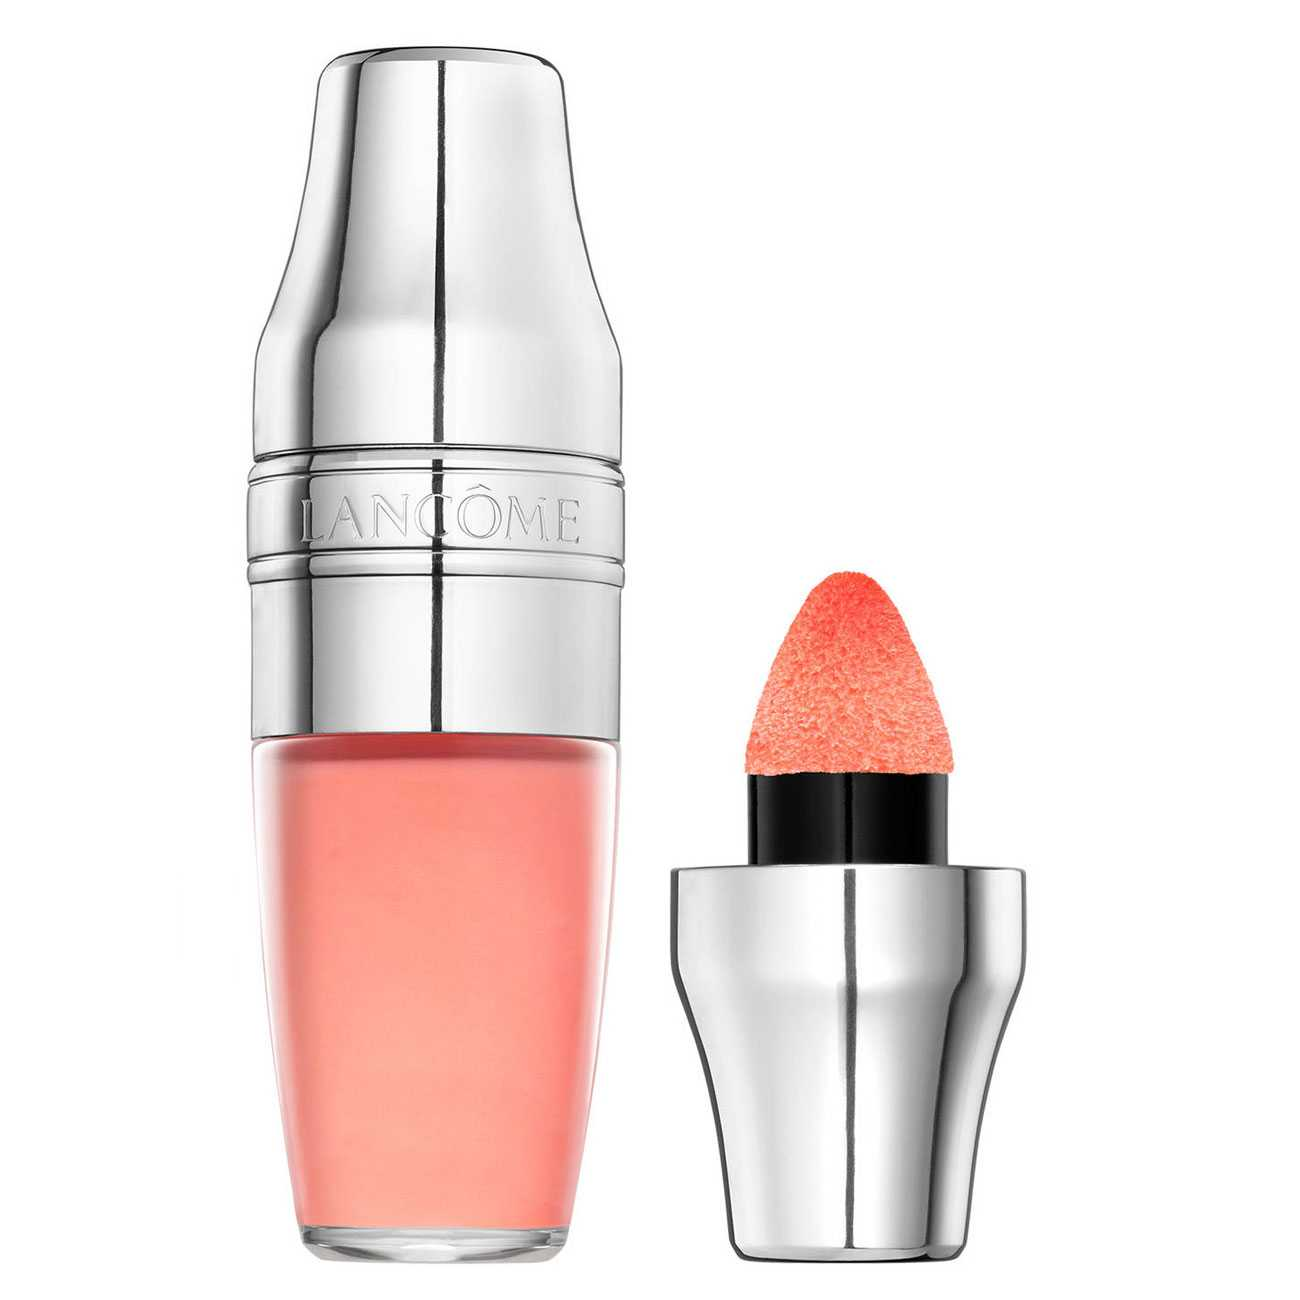 Juicy Shaker 6.5 Ml Freedom Of Peach 142 Lancôme imagine 2021 bestvalue.eu